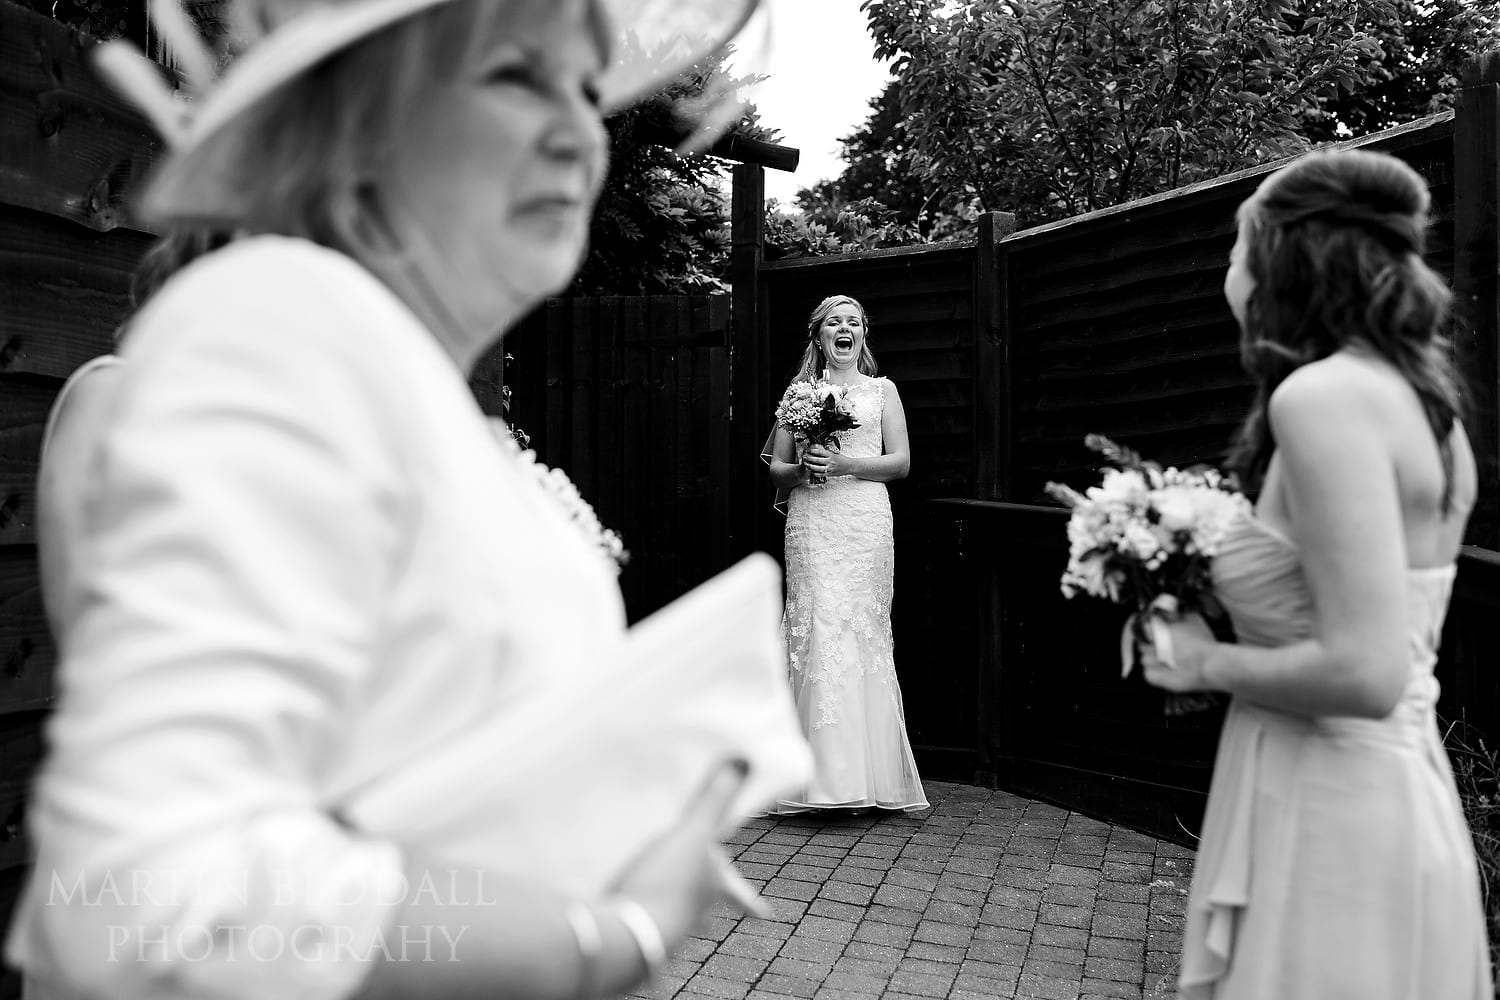 Wedding photography in 2016